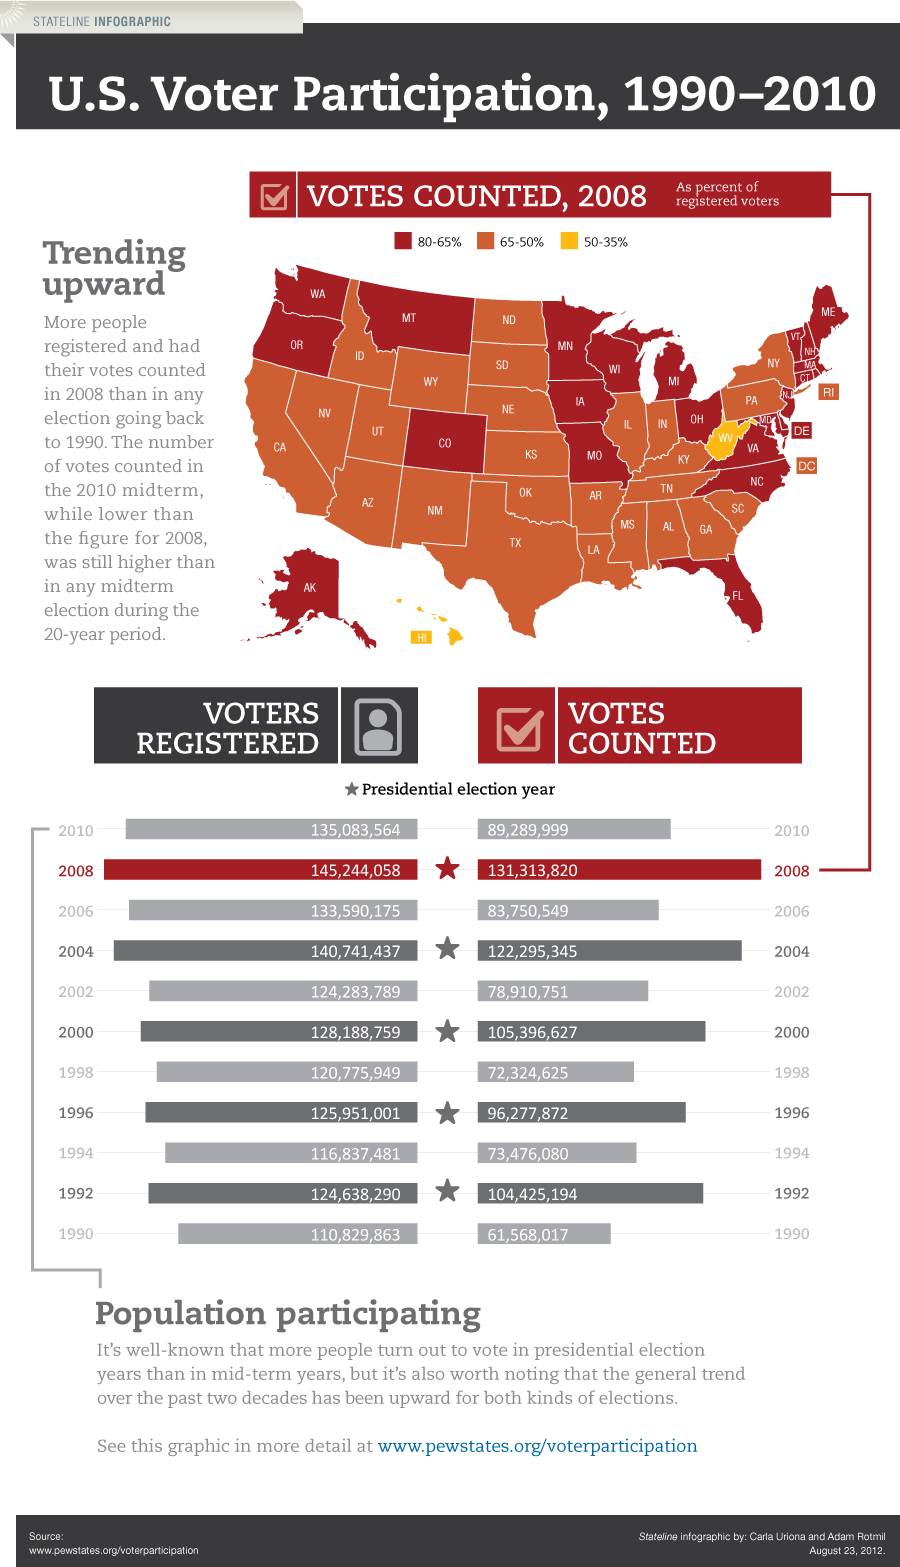 voter-participation-in-the-us_503632f80abc7